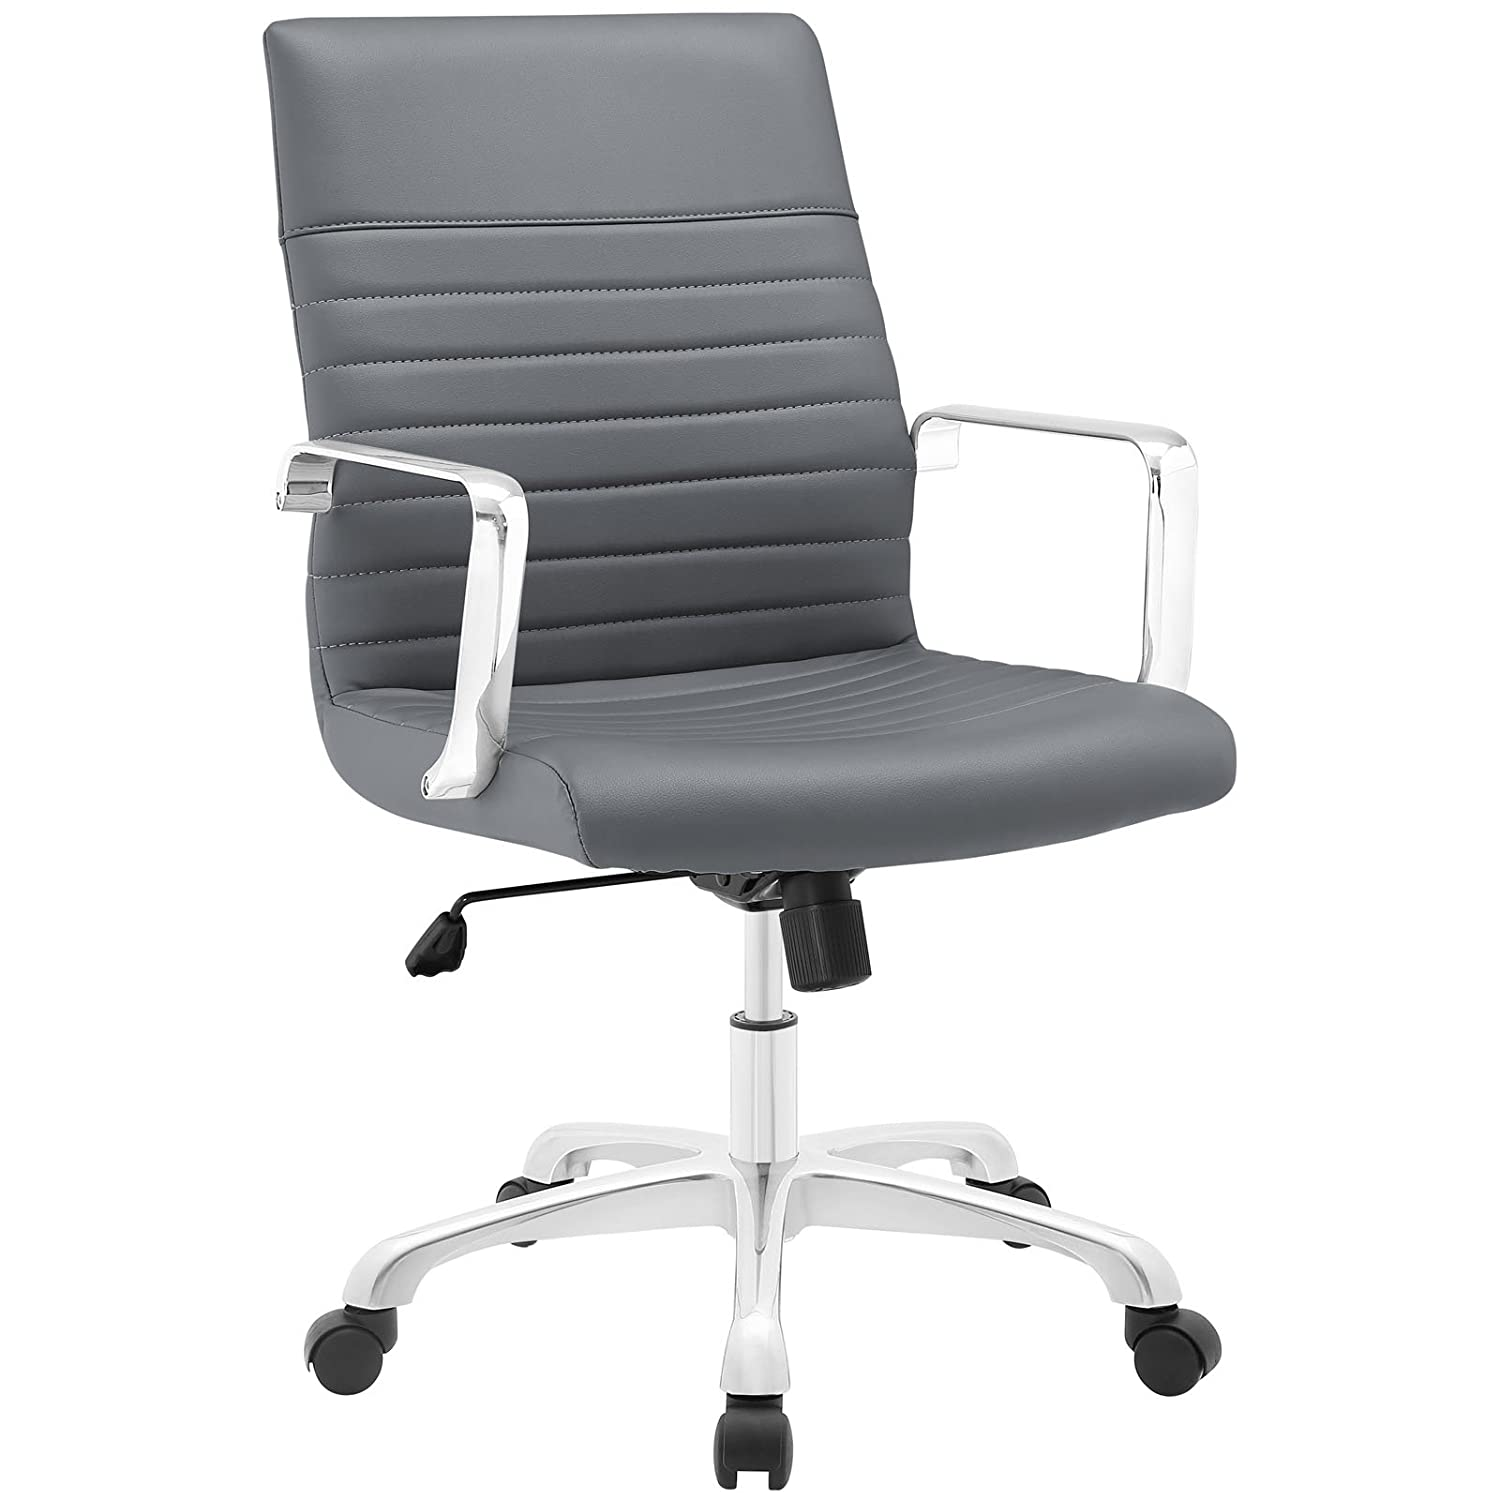 Modway Finesse Ribbed Faux Leather Mid Back Computer Desk Office Chair in Gray